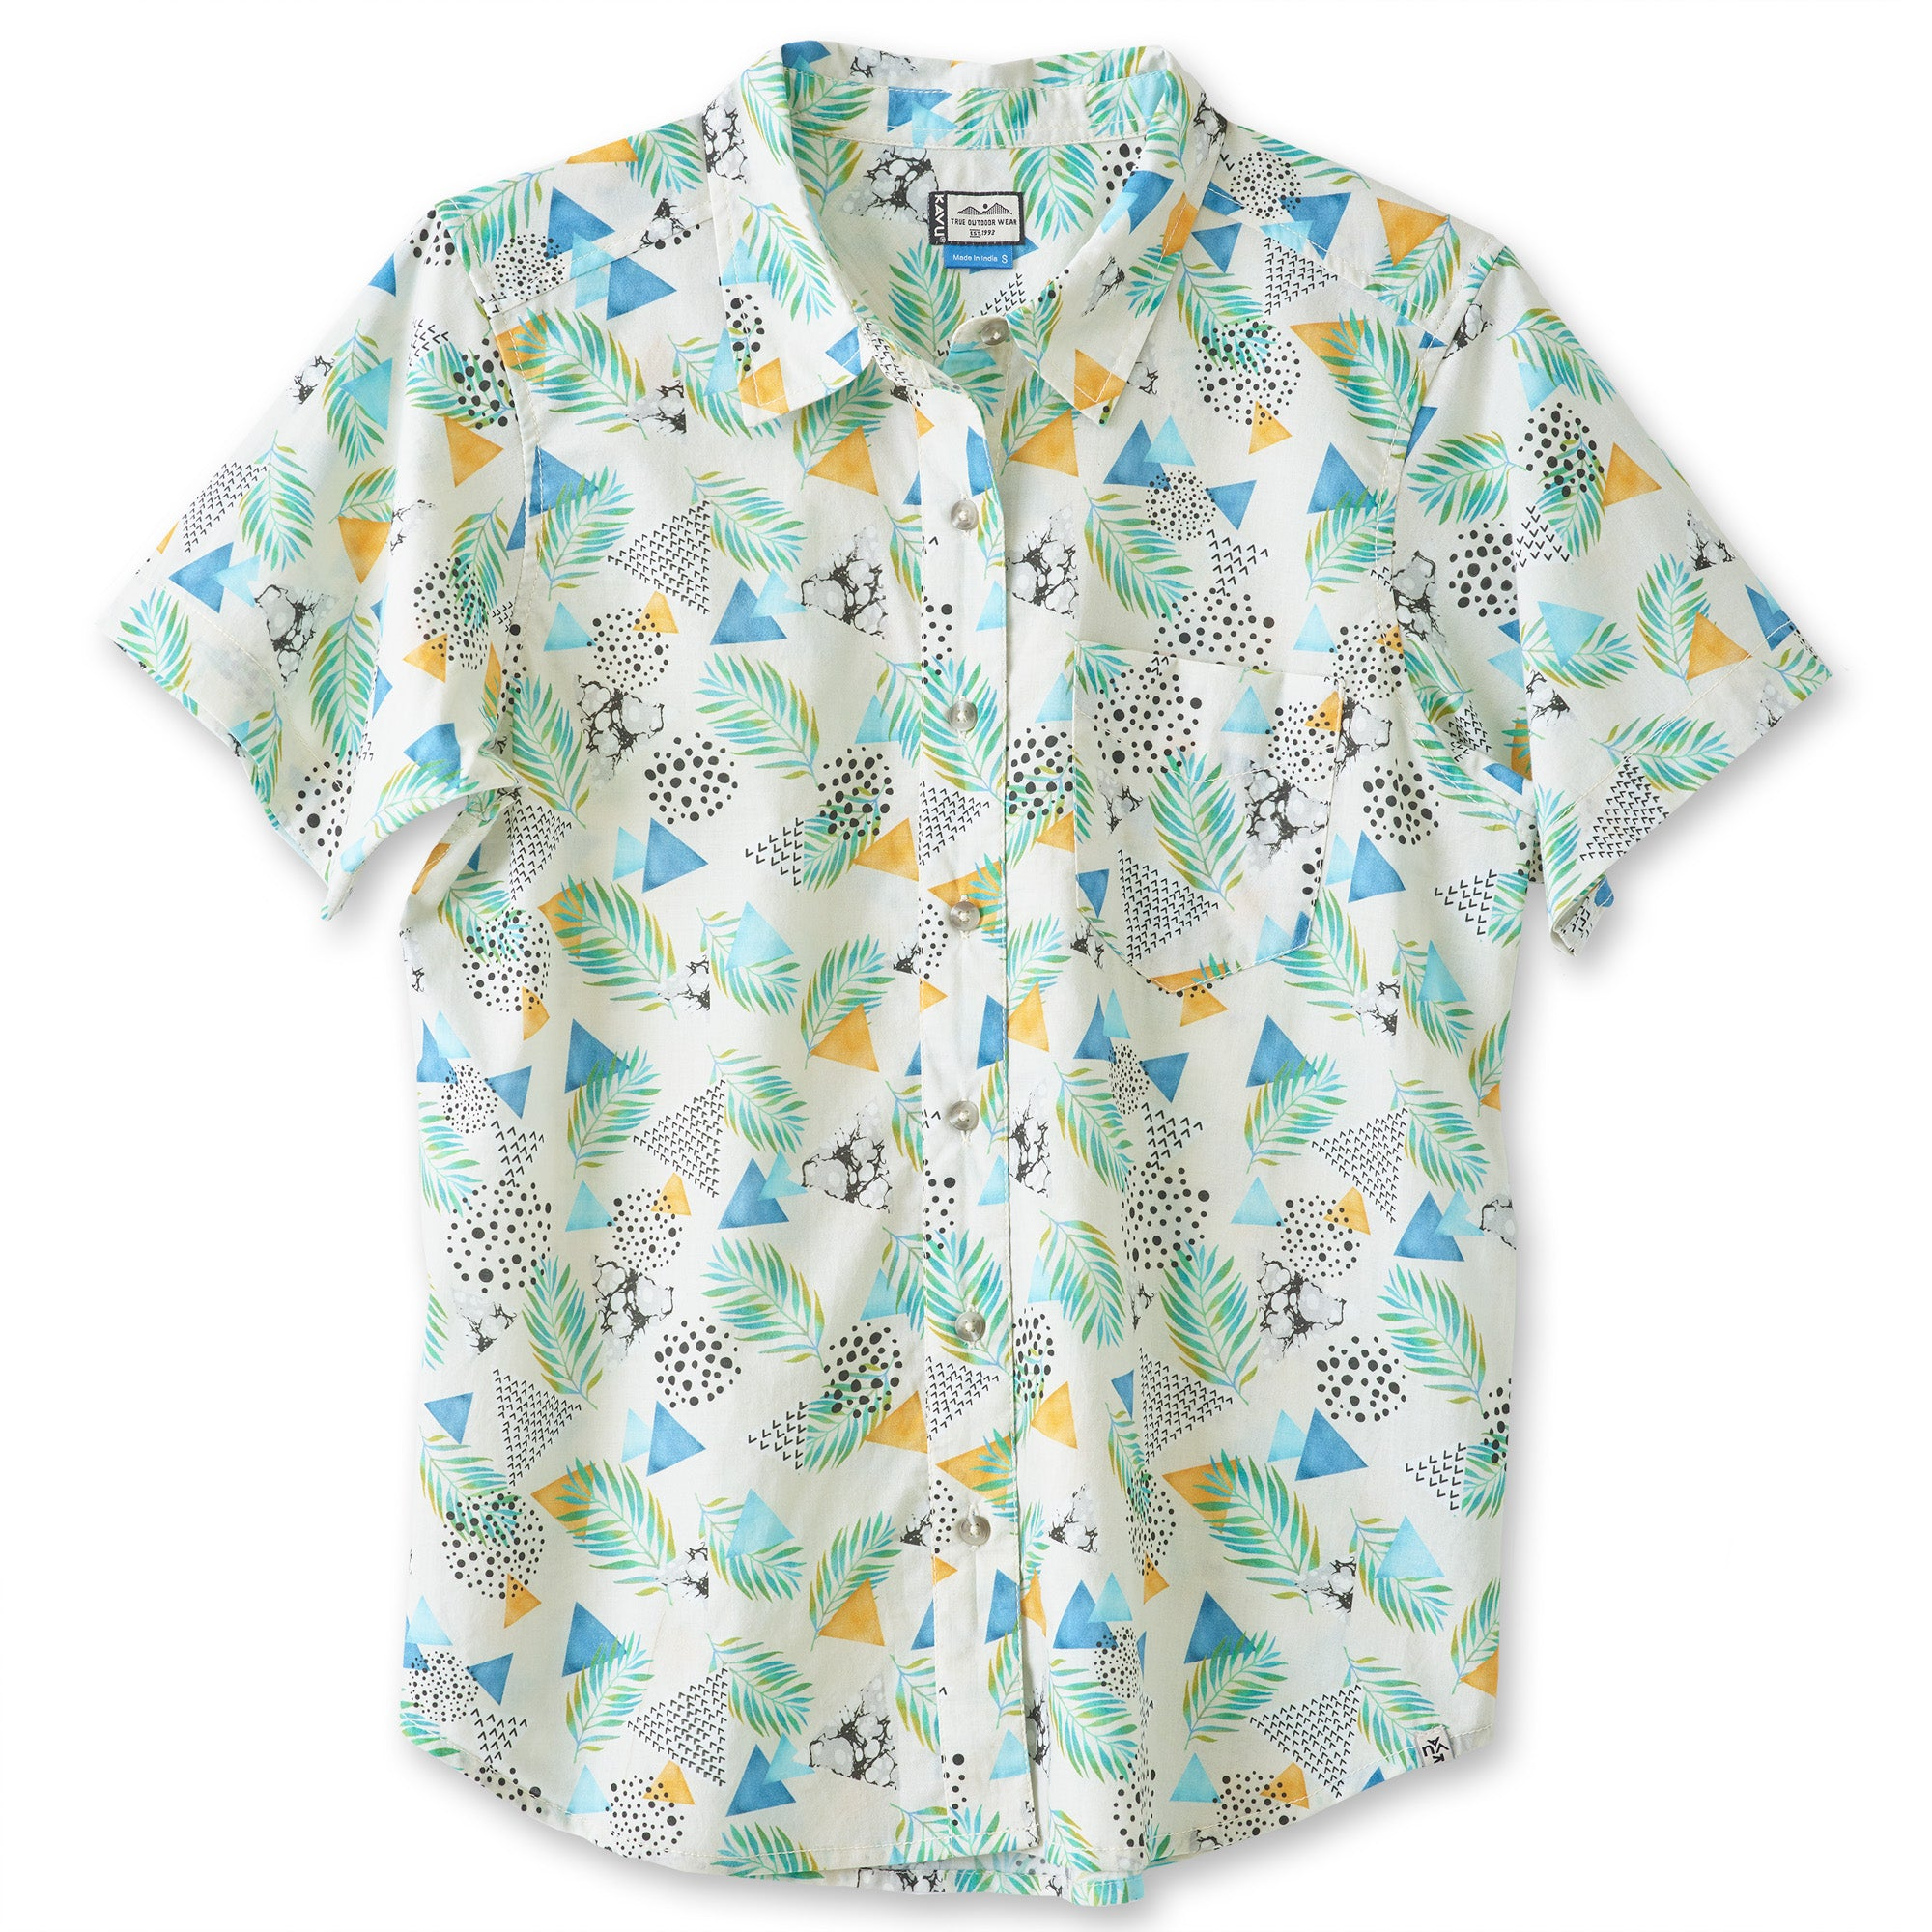 KAVU Girl Party Shirt - Final Sale